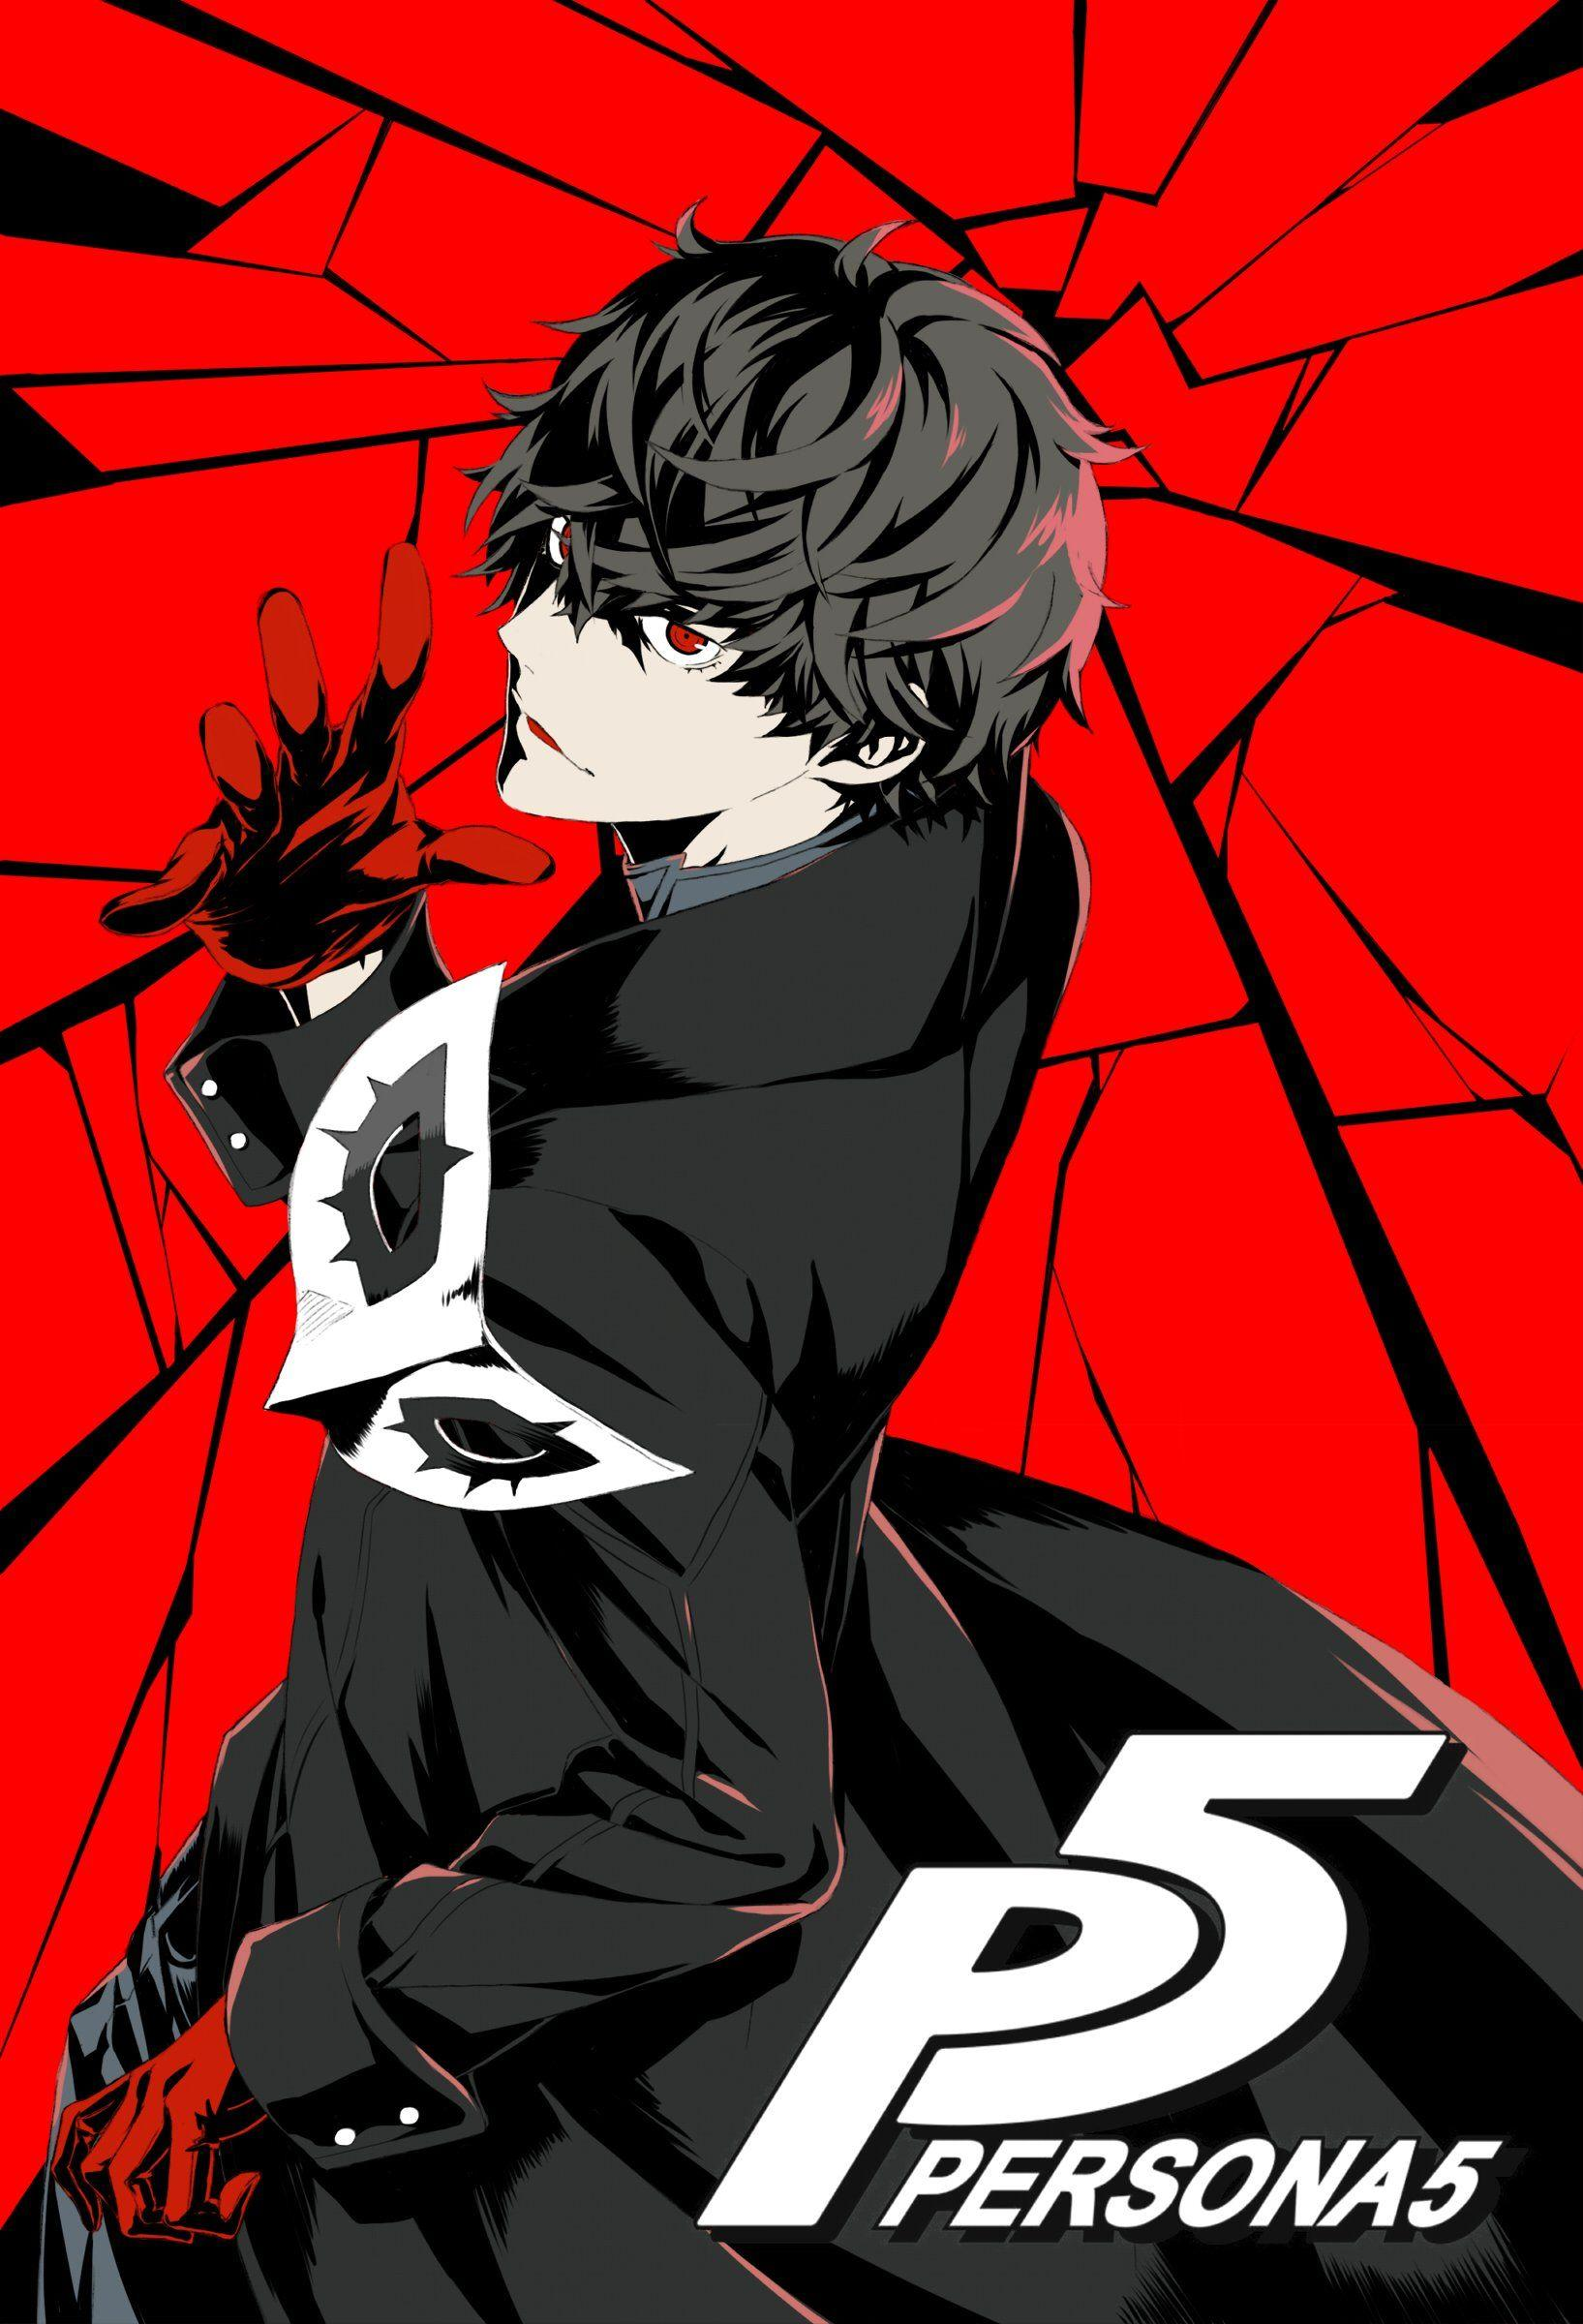 Persona 5 Wallpapers 3E Wallpapers